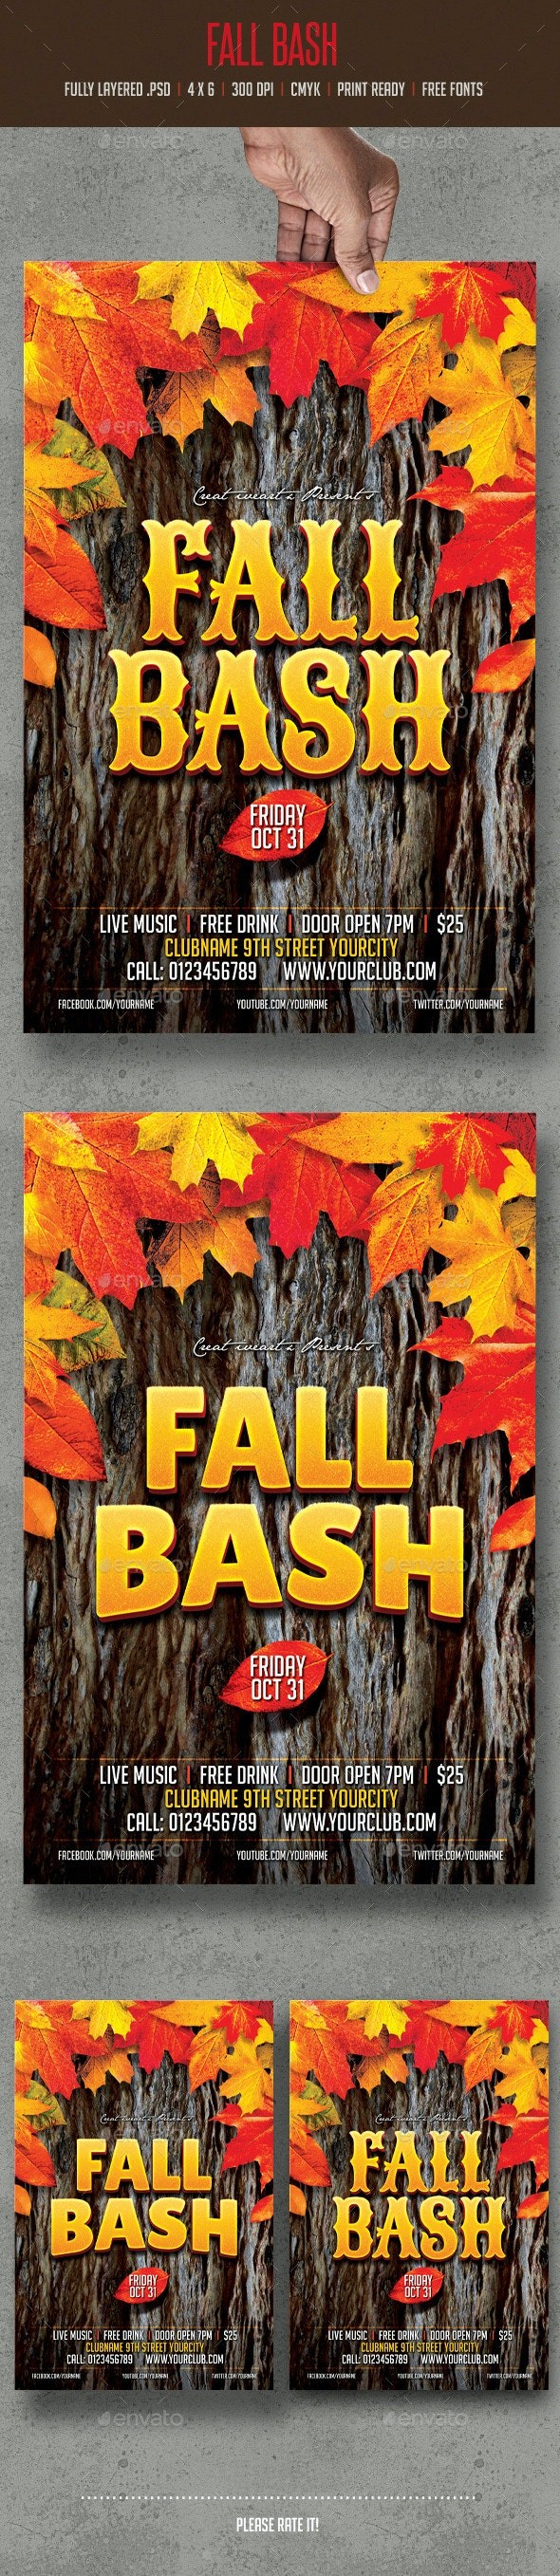 Fall Bash - Events Flyers